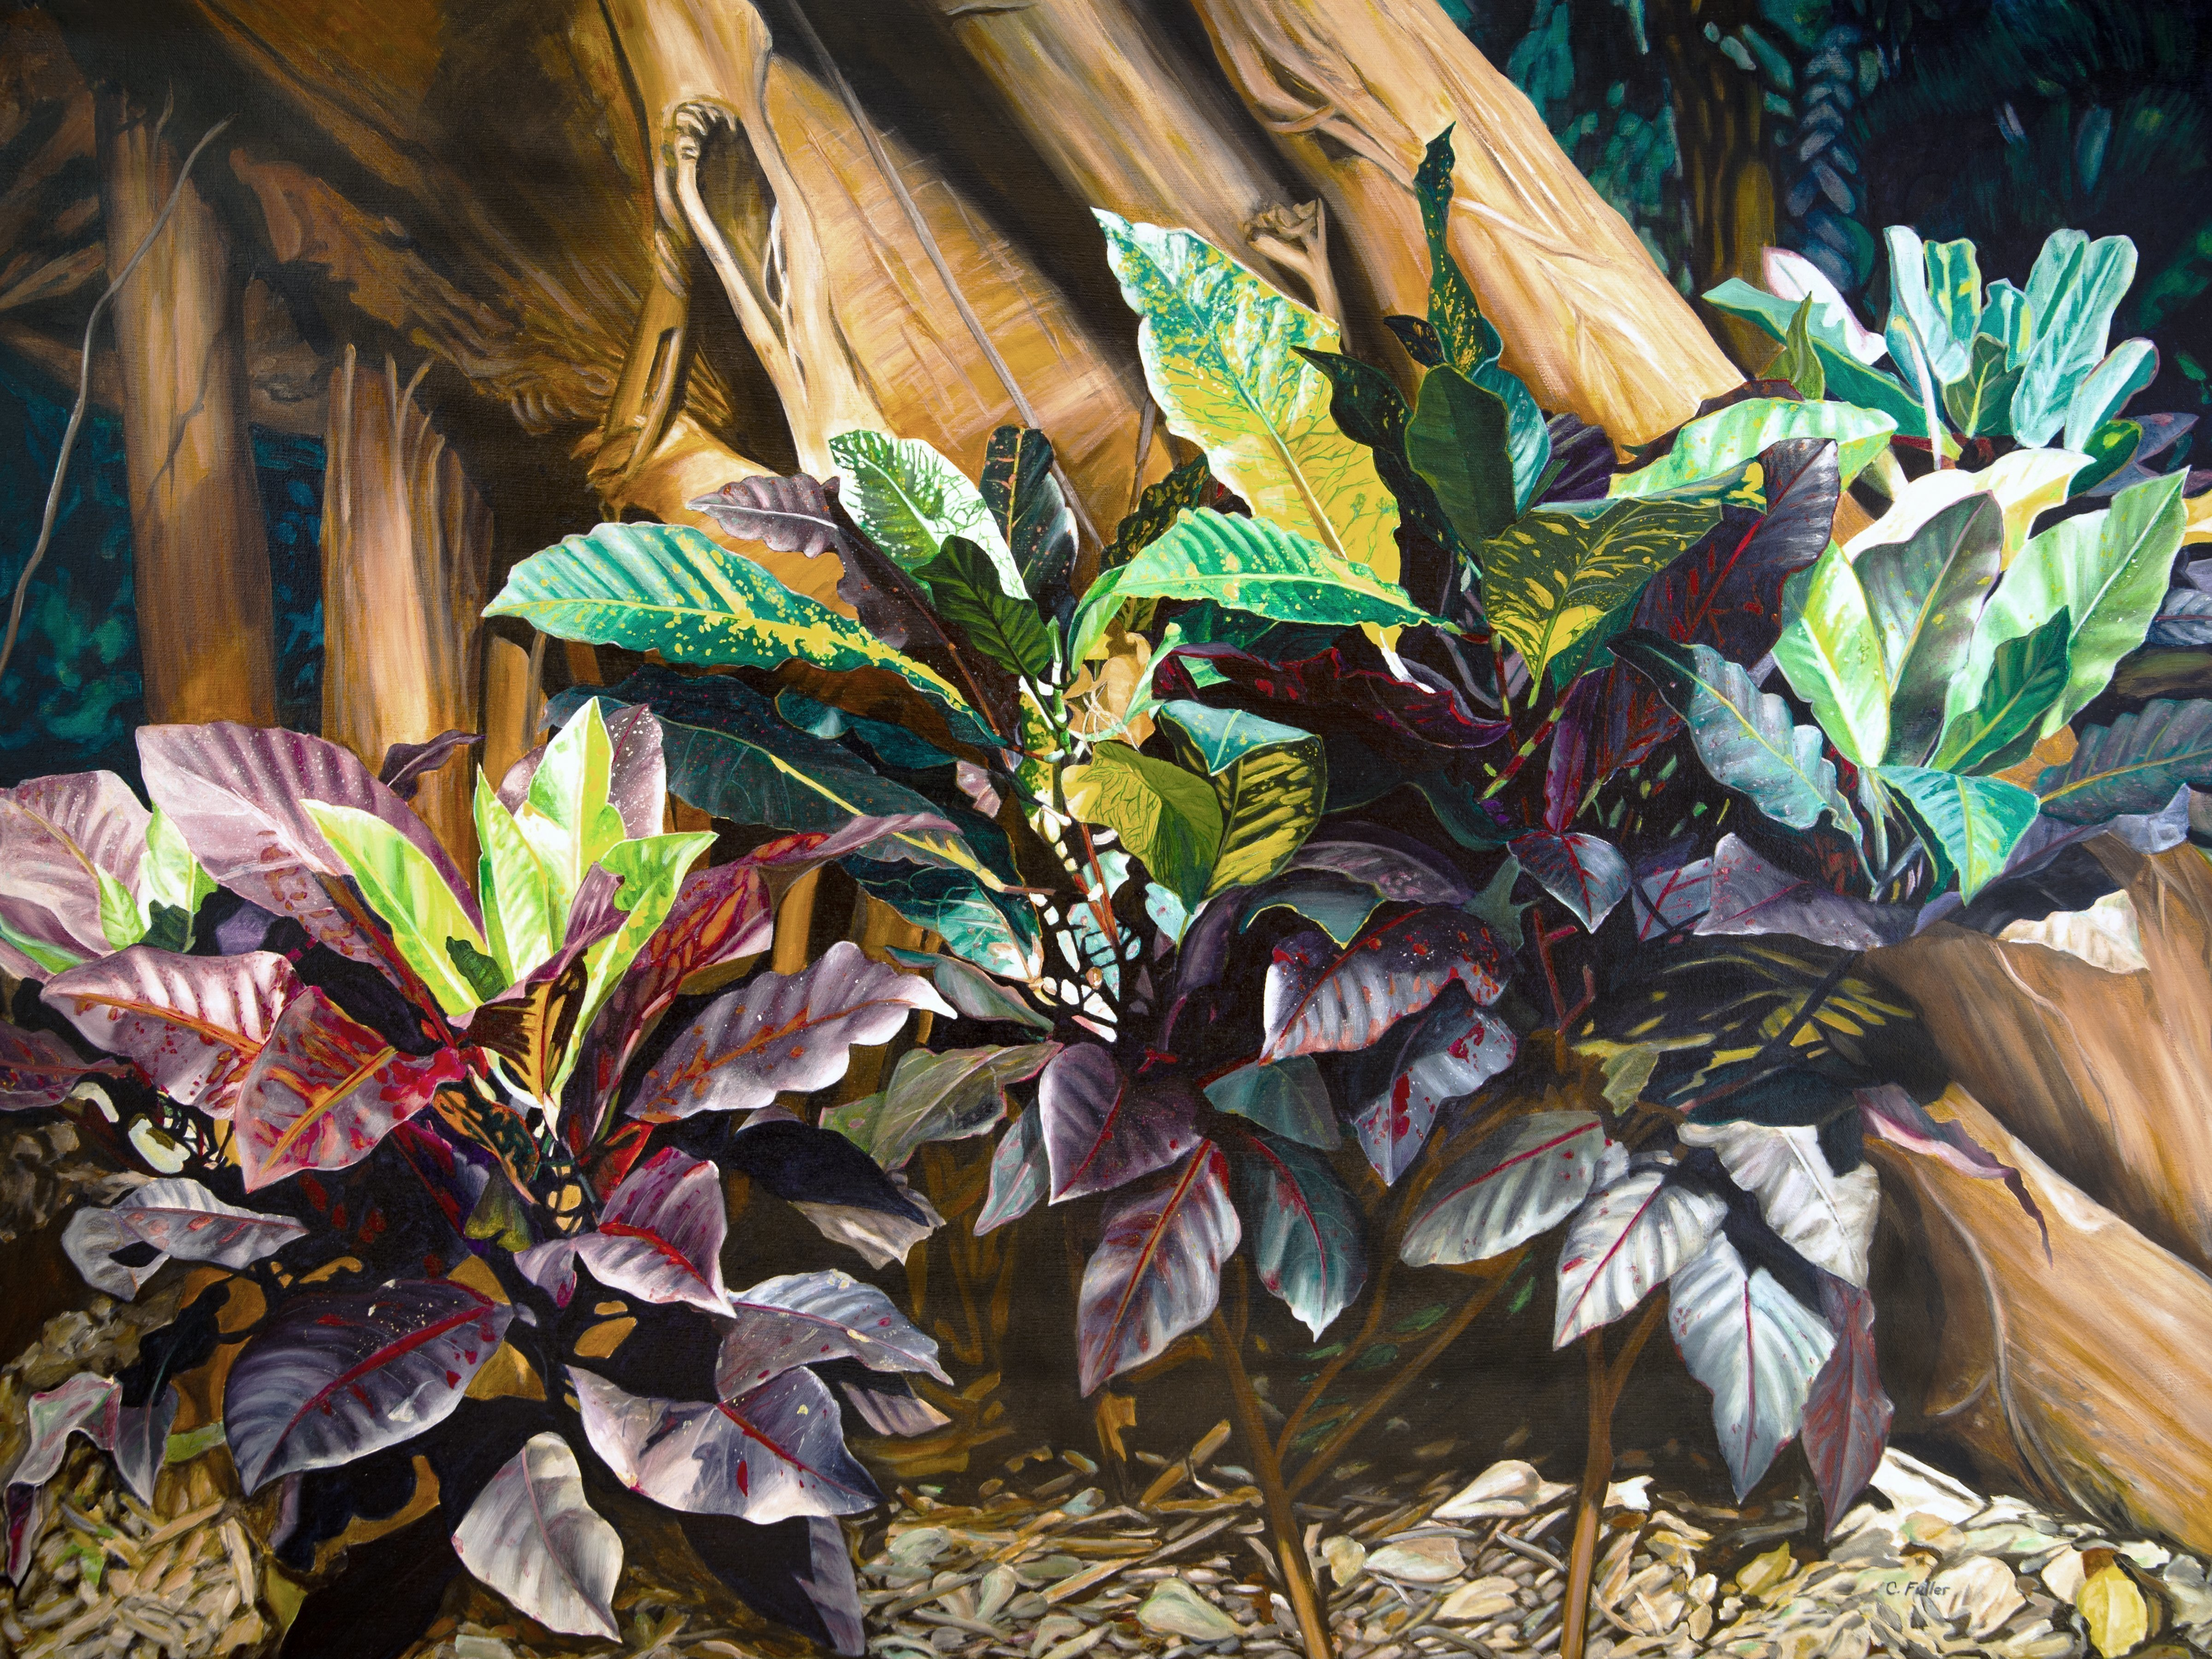 Caren Keyser: 'croton and the strangler fig', 1980 Acrylic Painting, Nature. Created in 1980 this modern realistic acrylic painting was from a photo of young croton plants at the base of a tree being taken over by a strangler fig tree.  The vibrant colors and strong contrast bring the piece to life.  It has been newly photographed for large prints.  ...